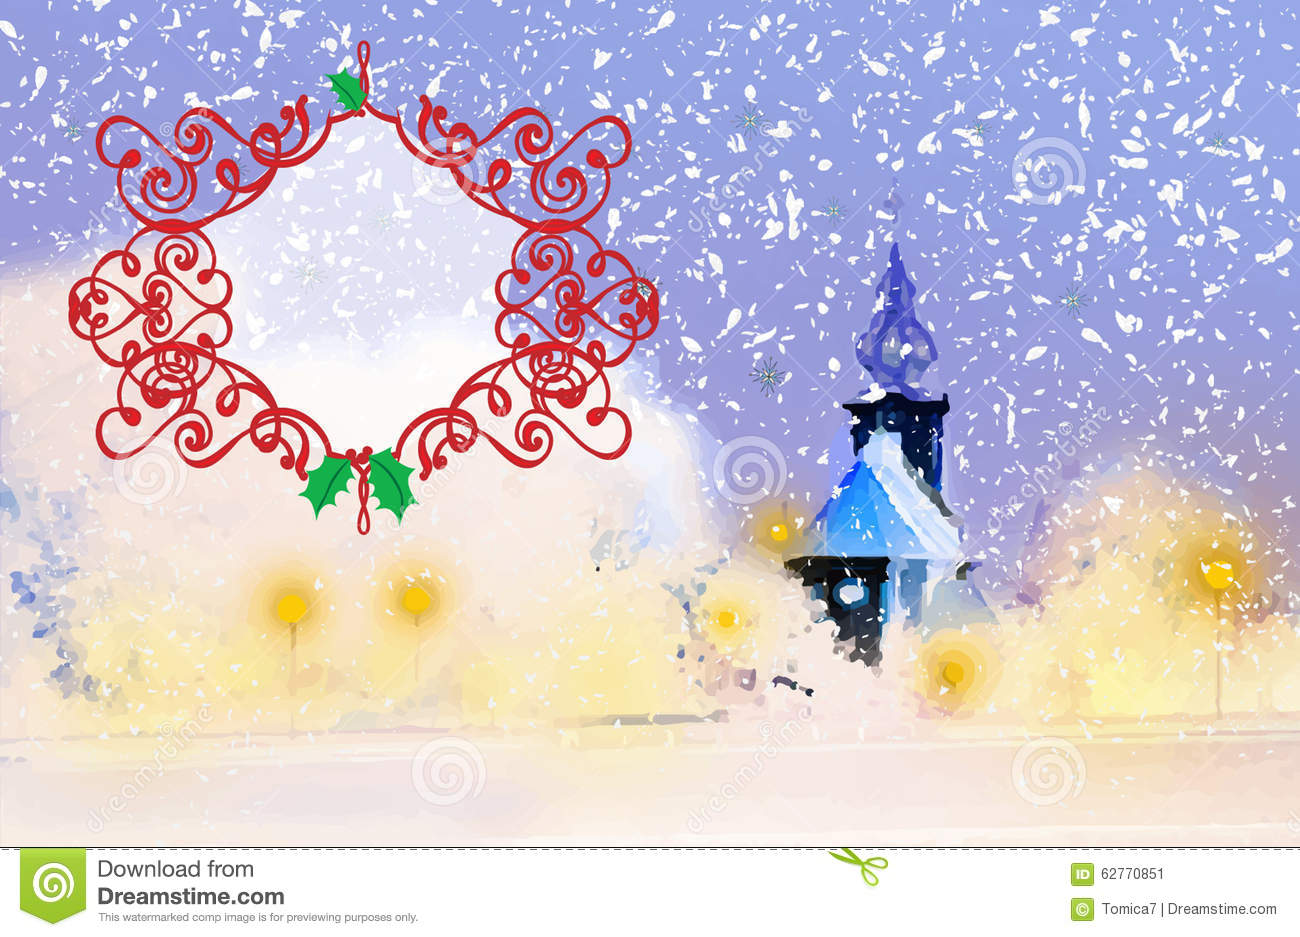 winter evening with a church in the snow christmas or new year greeting card or background with ornament blank emty text box illustration